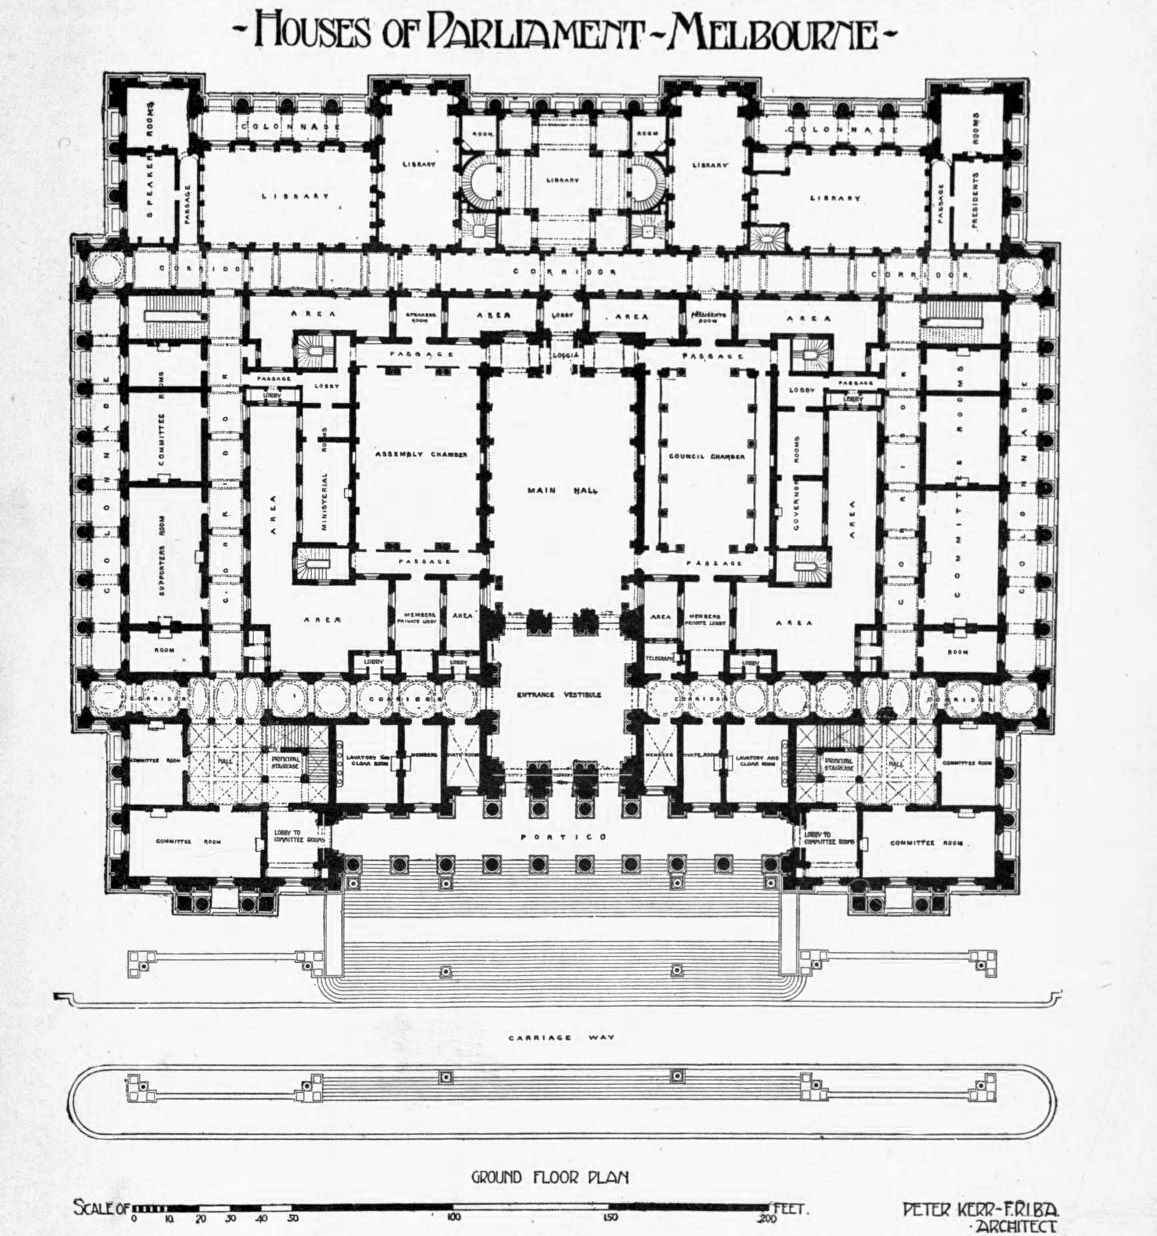 The floor plan of the Houses of Parliament Melbourne